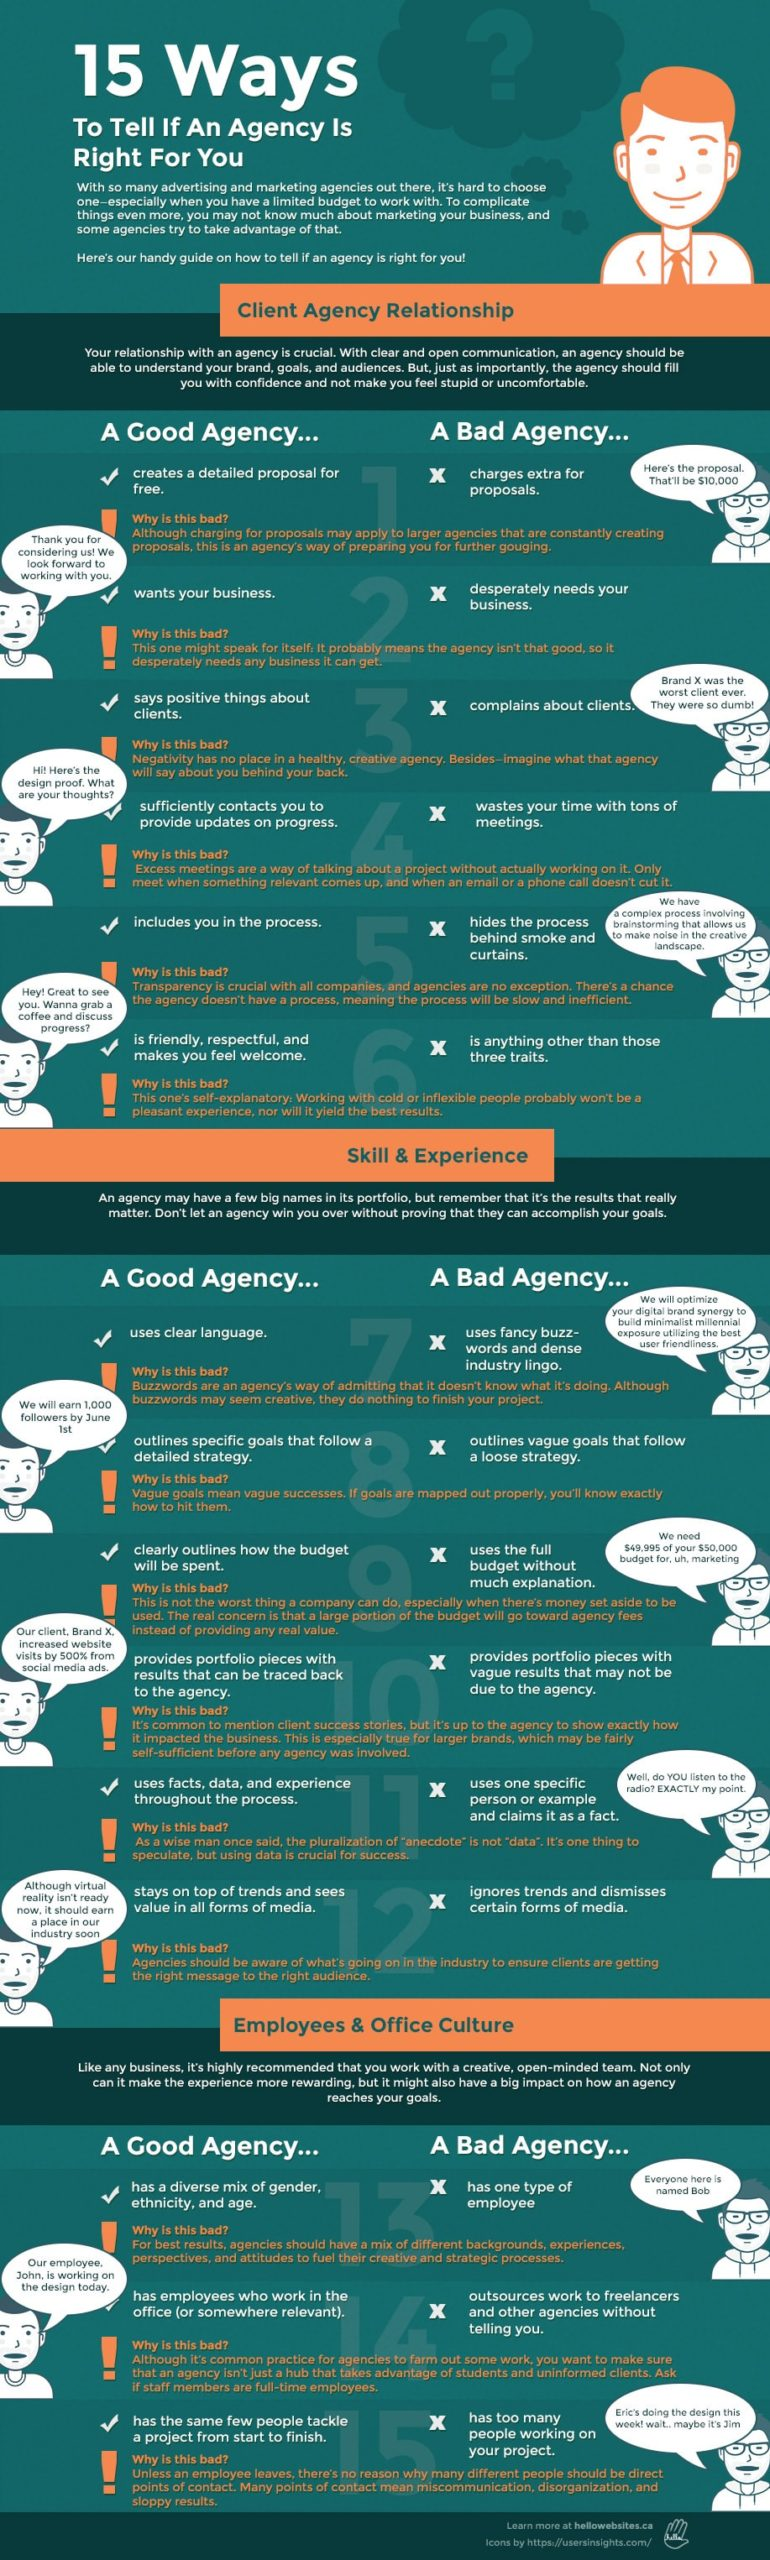 15 Ways To Tell If An Agency Is Right For You 2